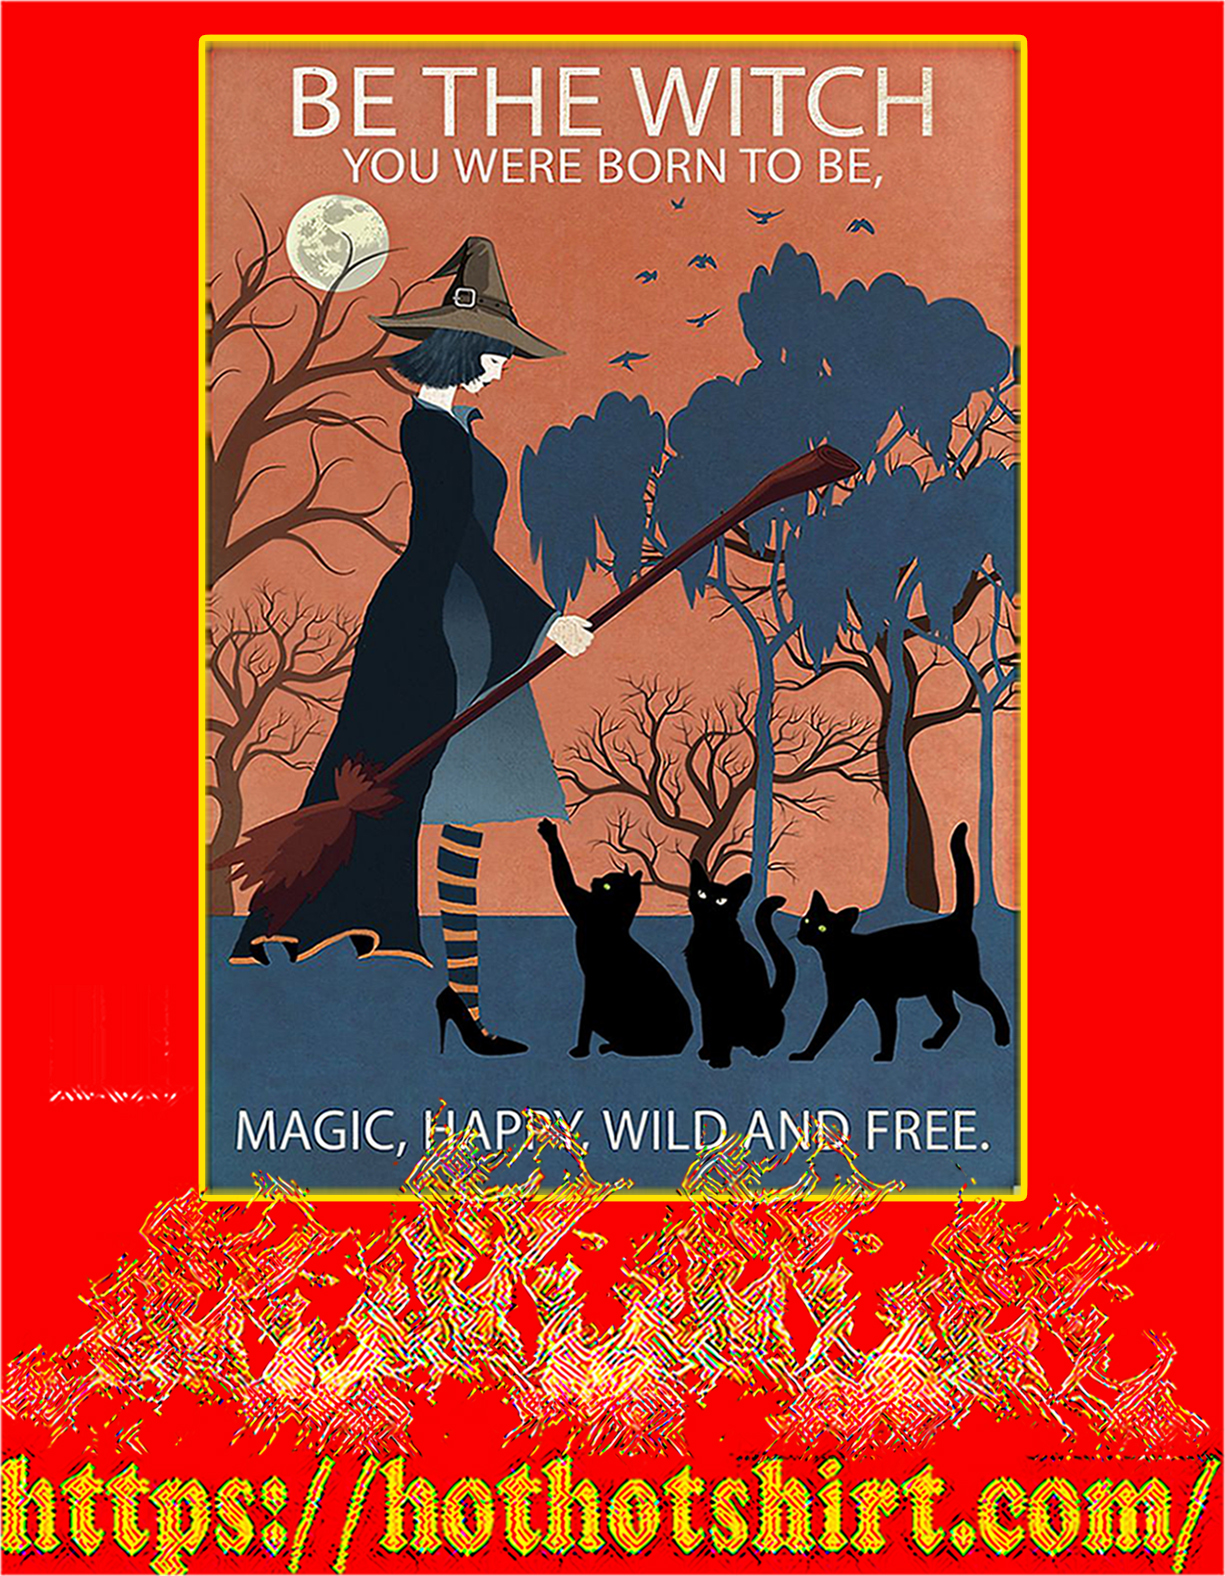 Vintage girl Be the witch you were born to be magic happy wild and free poster - A4